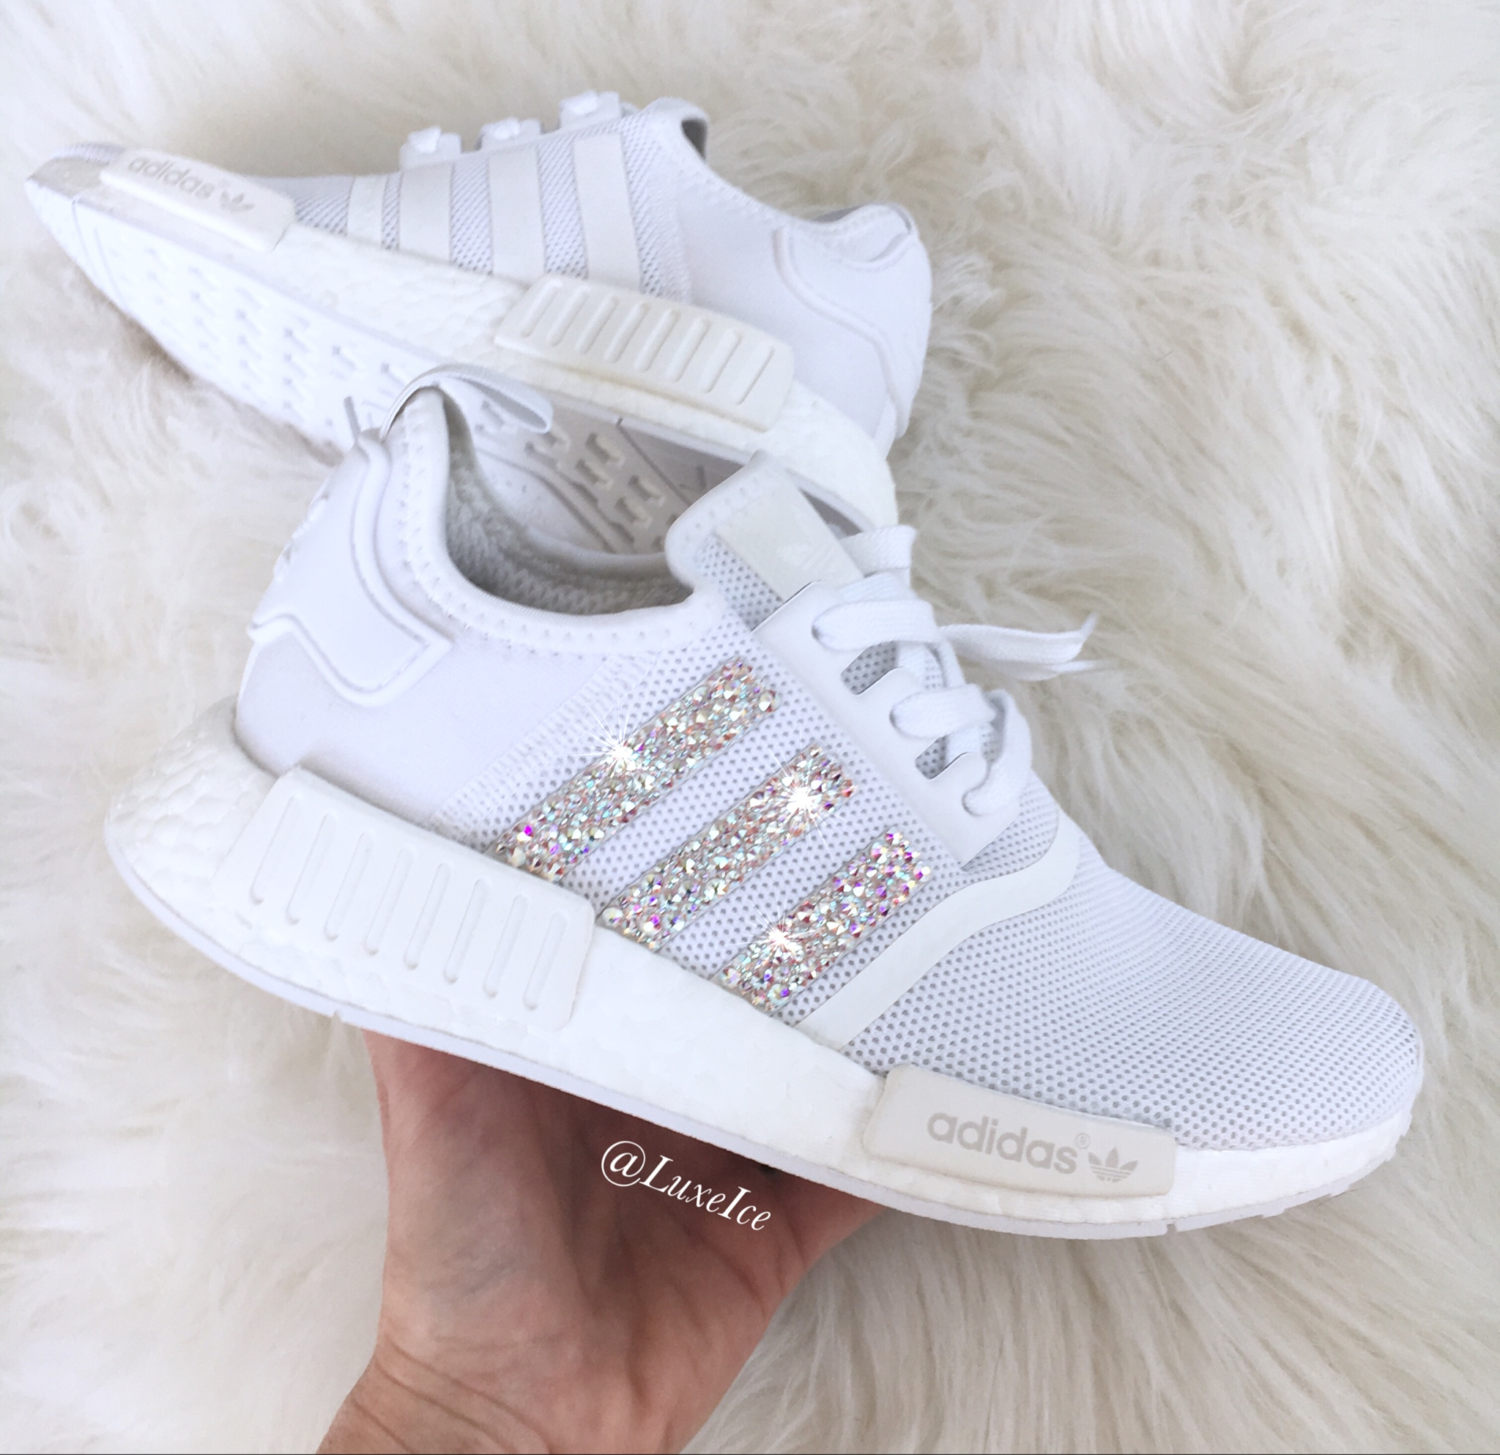 99e01eba1253f Adidas NMD Runner customized with SWAROVSKI® Xirius Rose-Cut Crystals AB.